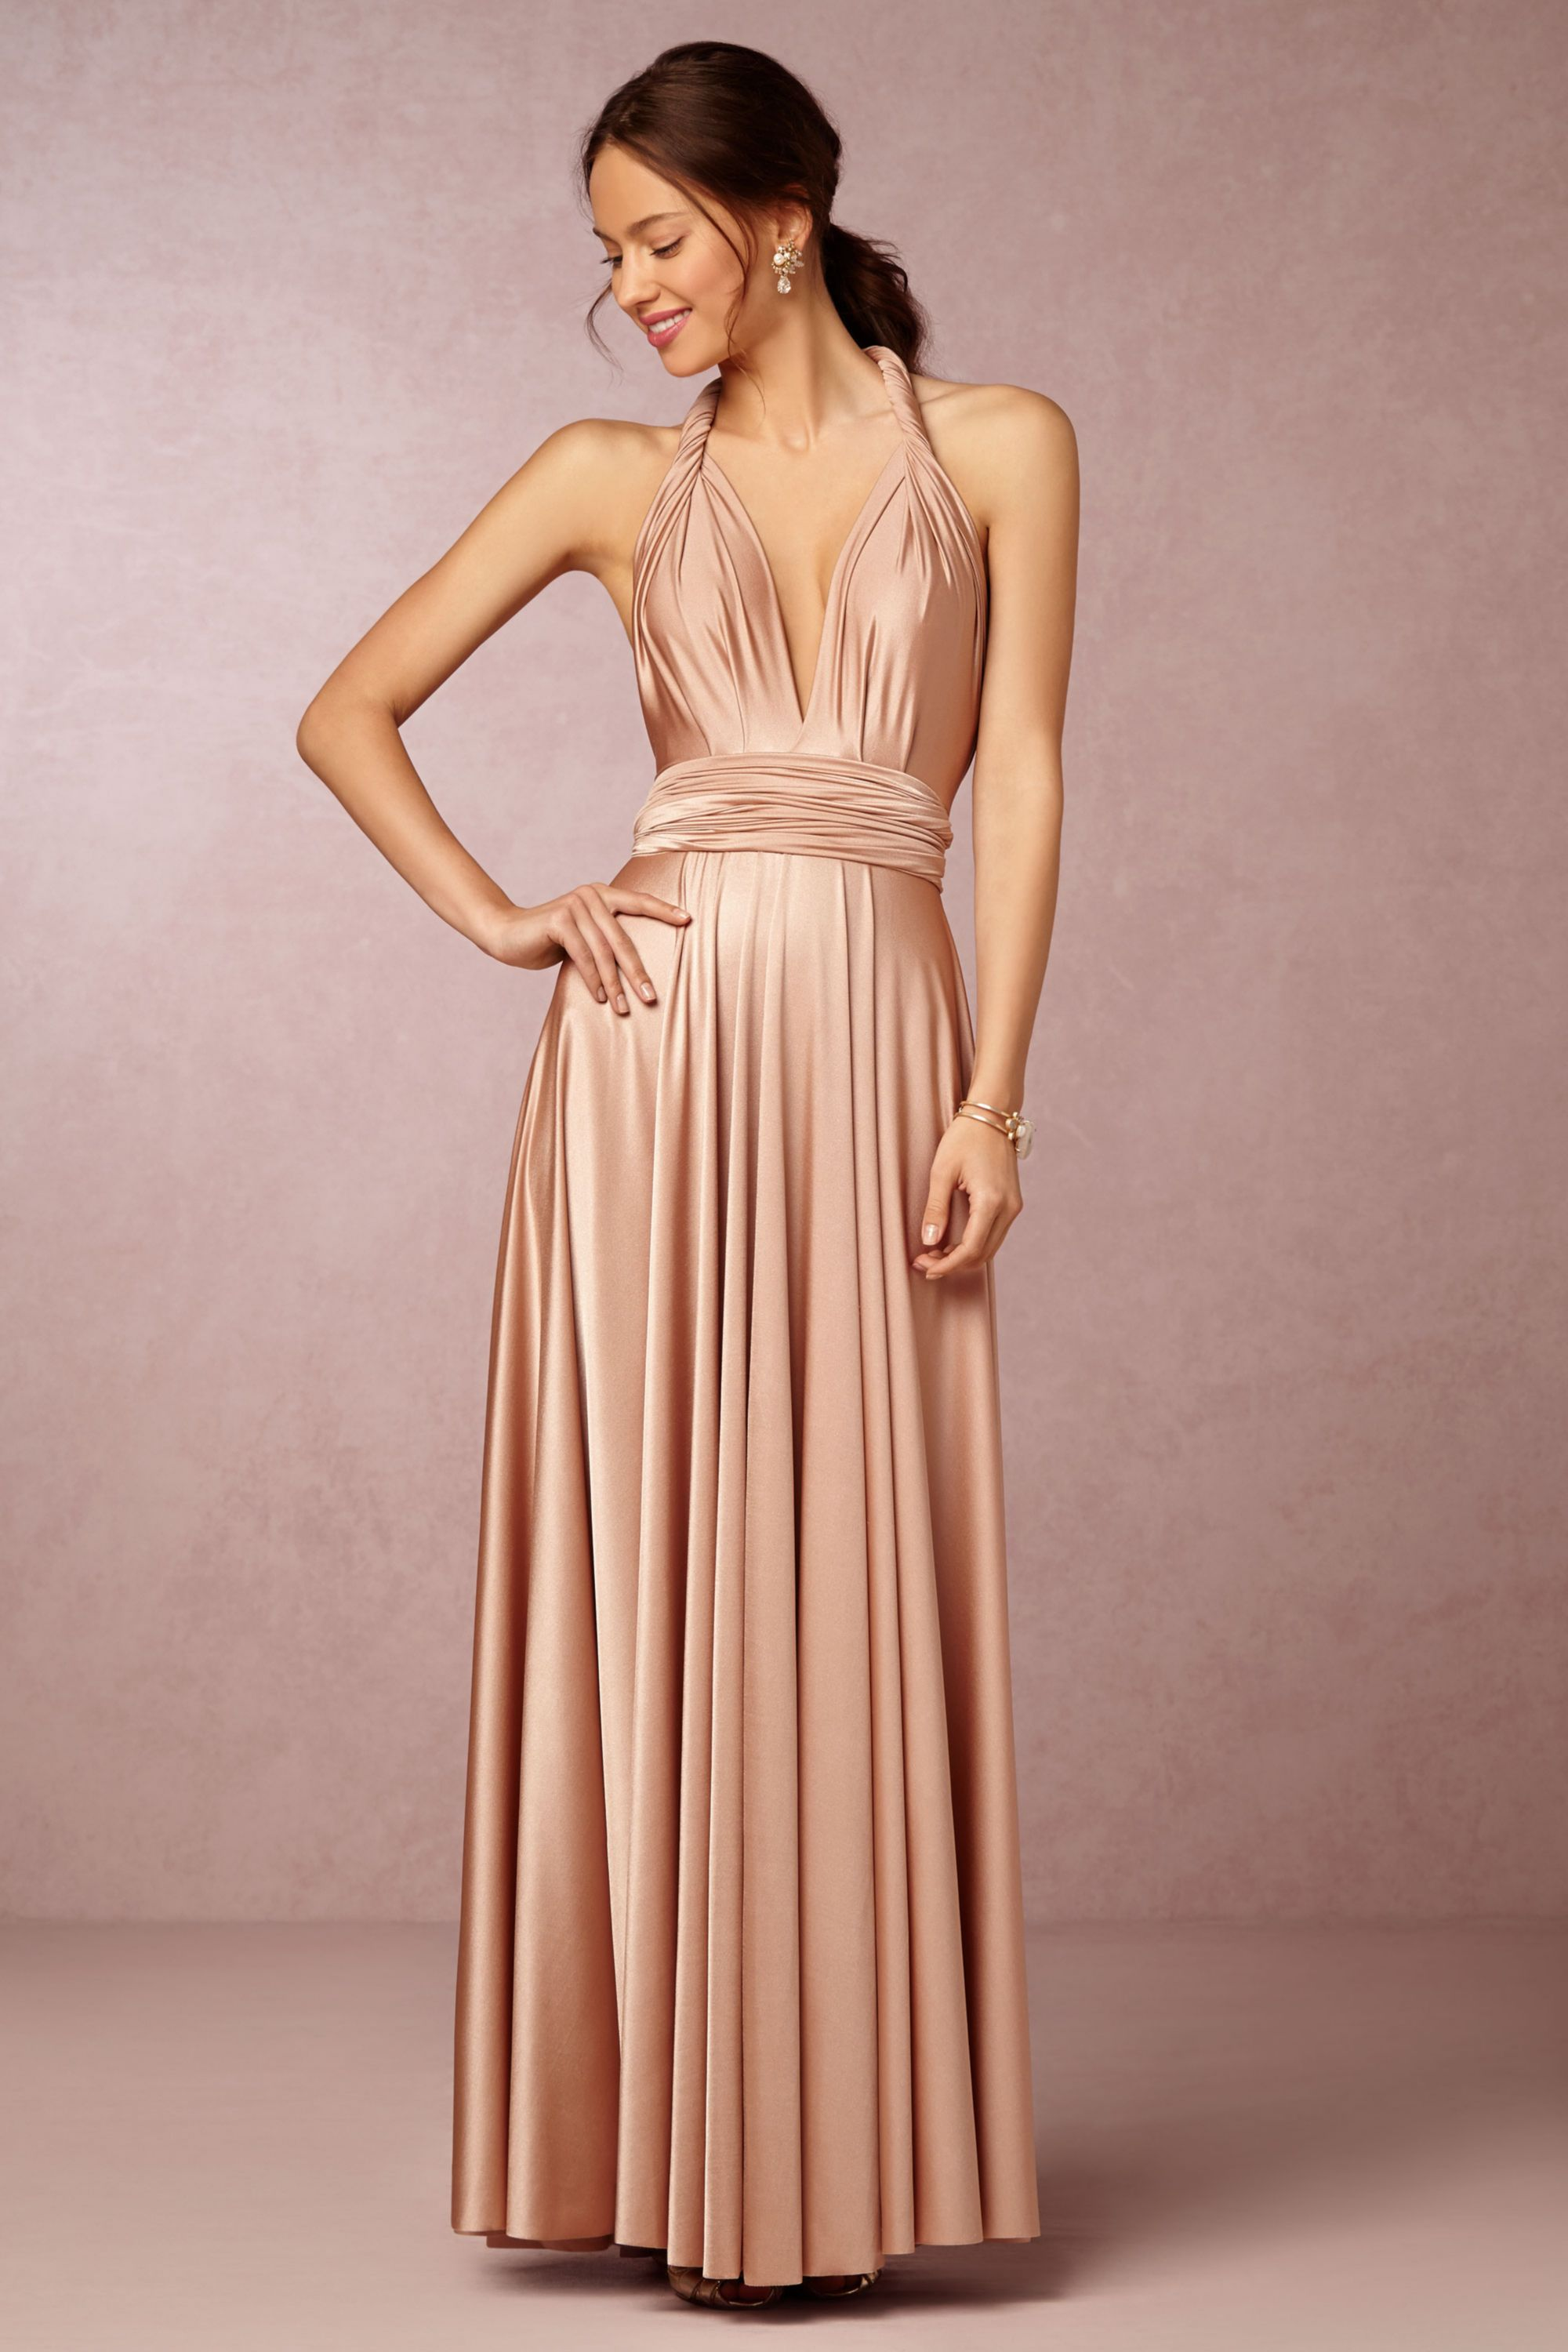 1c64d7cbfed8 Ginger Convertible Maxi Dress - BHLDN